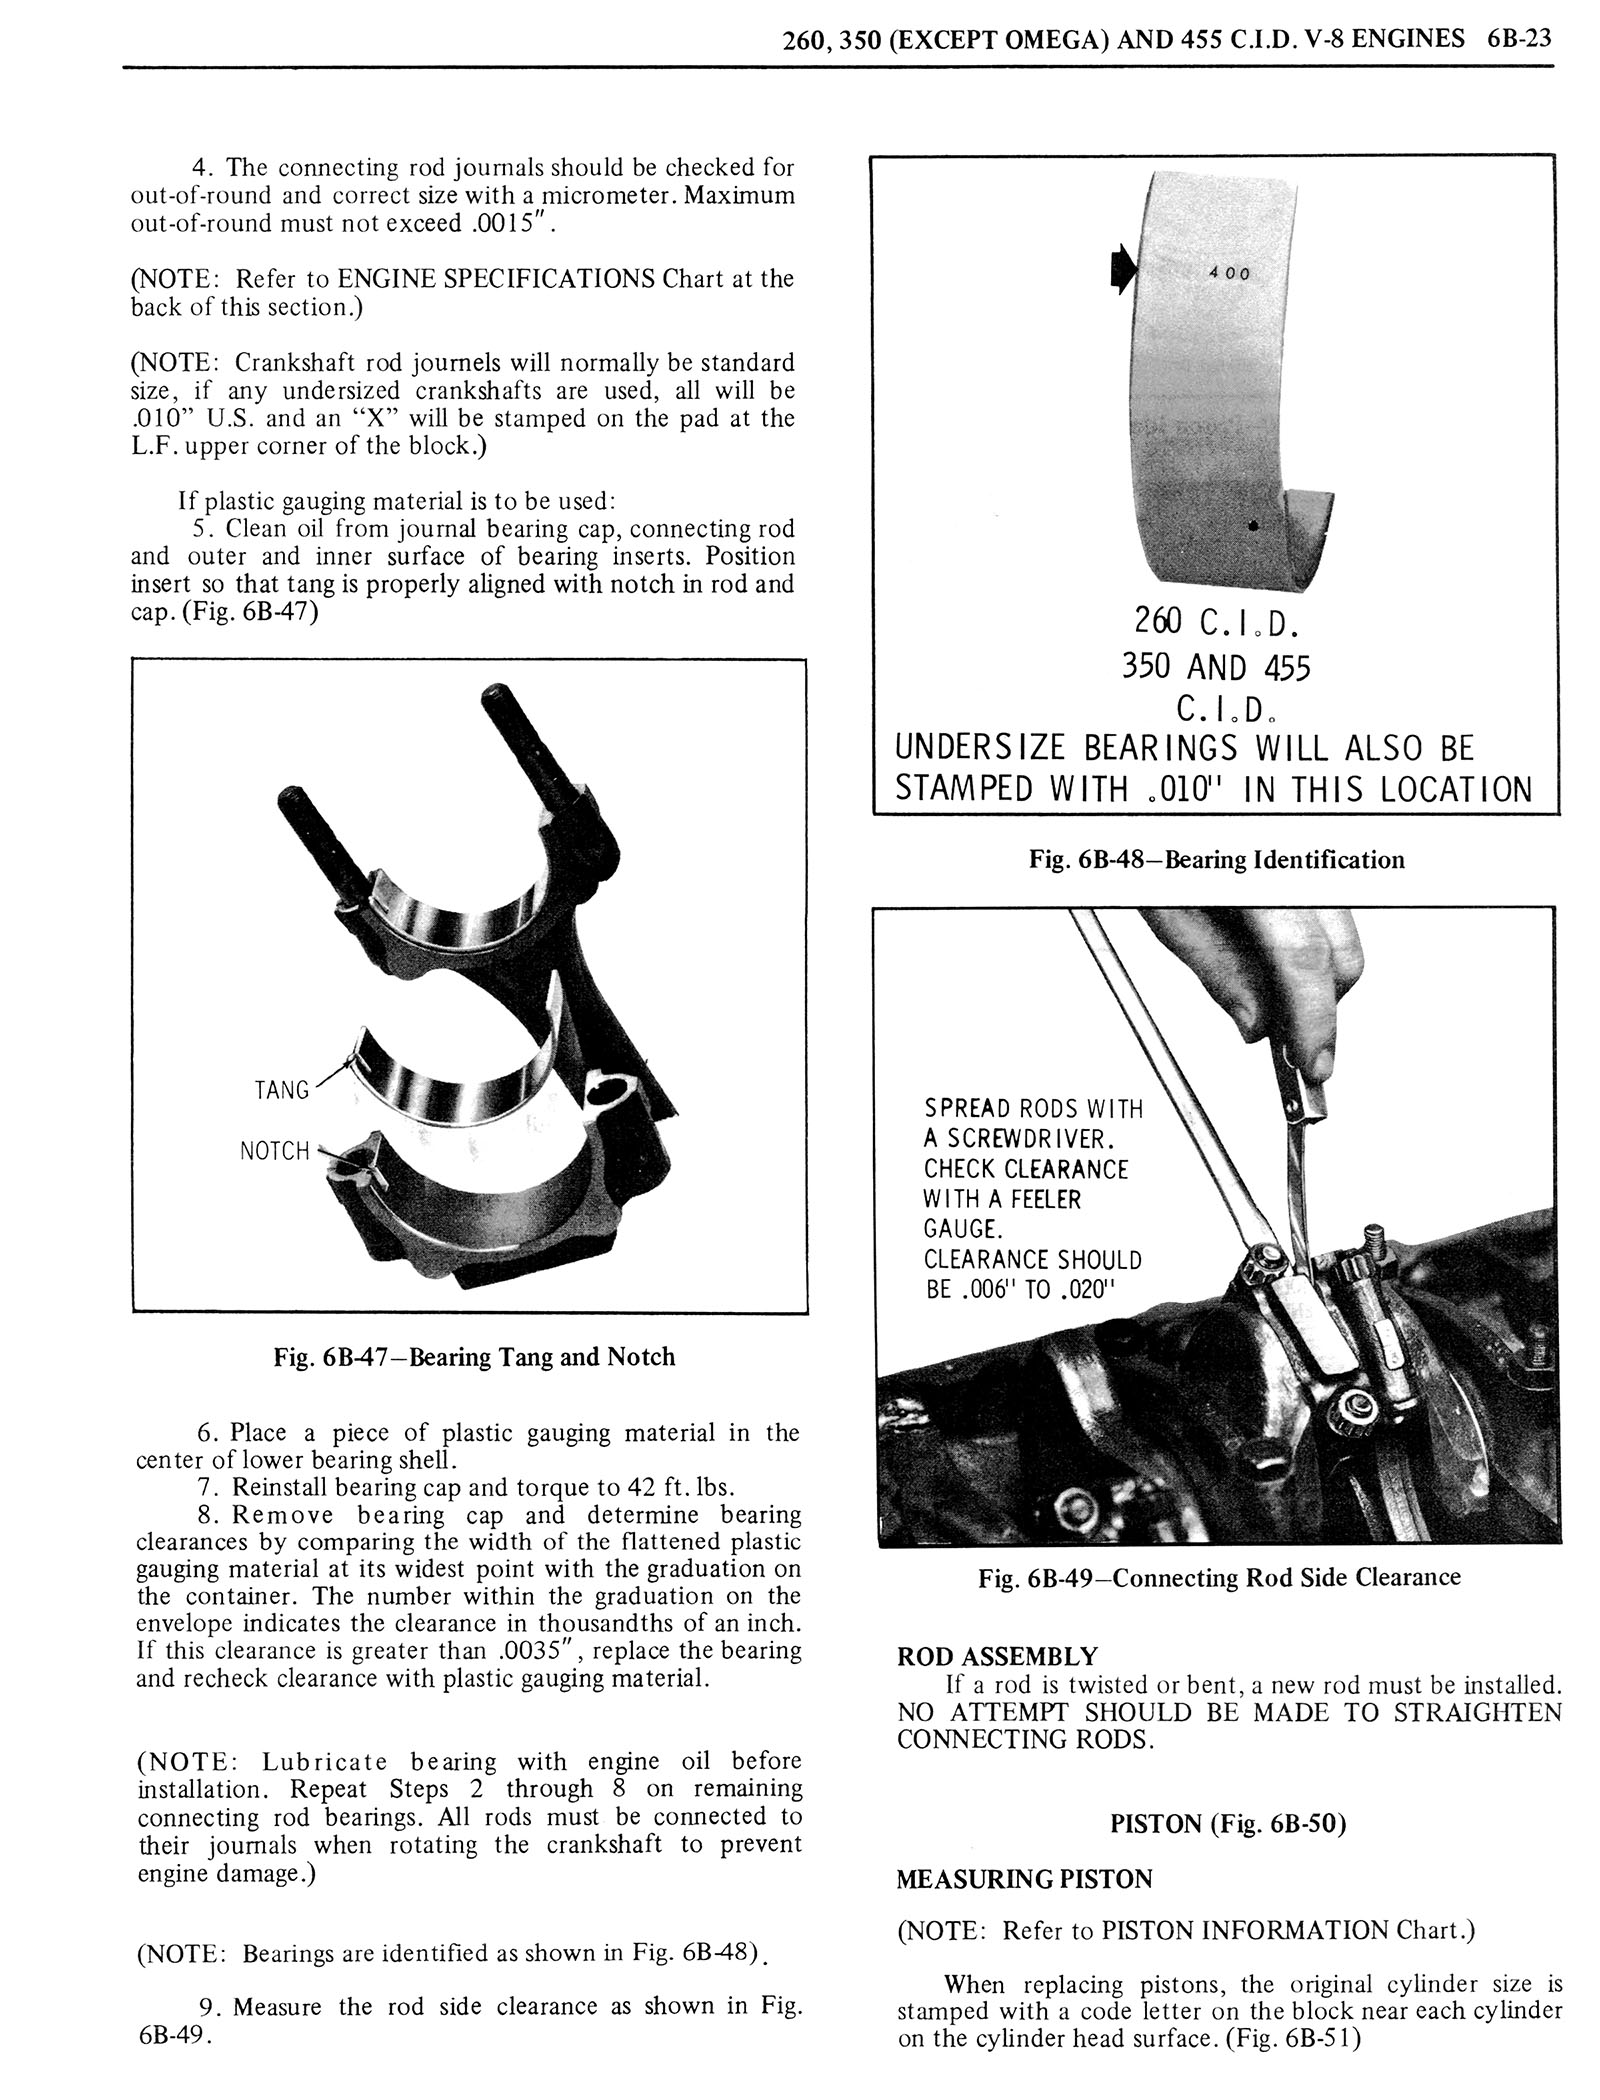 1976 Oldsmobile Service Manual page 442 of 1390